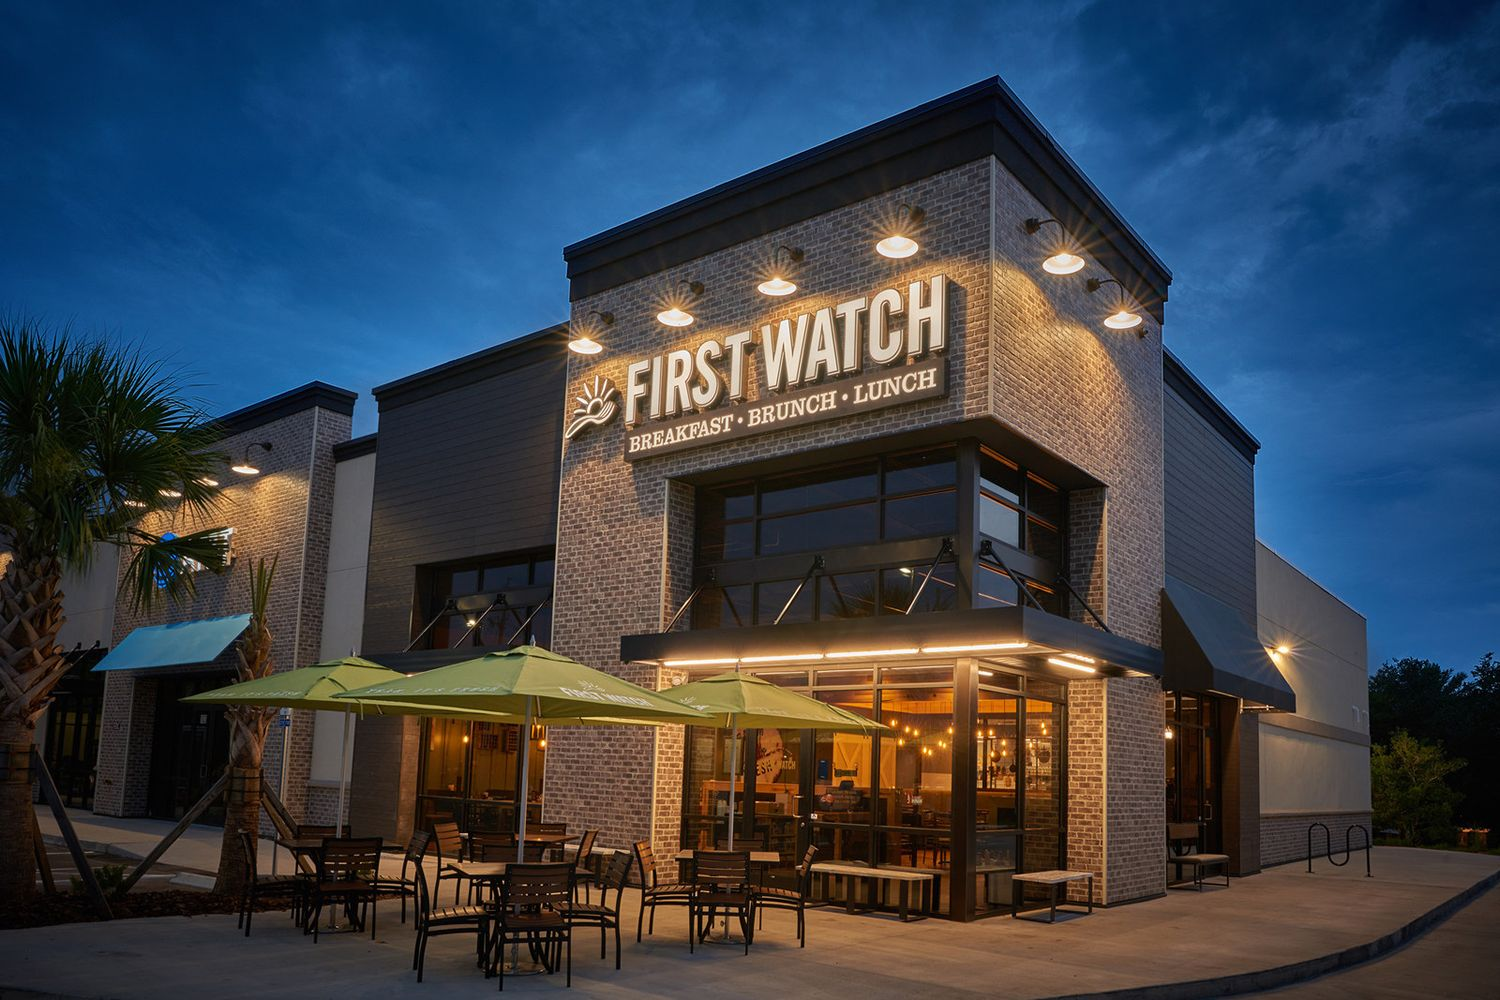 First Watch to Bring Award-Winning Breakfast, Brunch and Lunch to Chicago in 2020